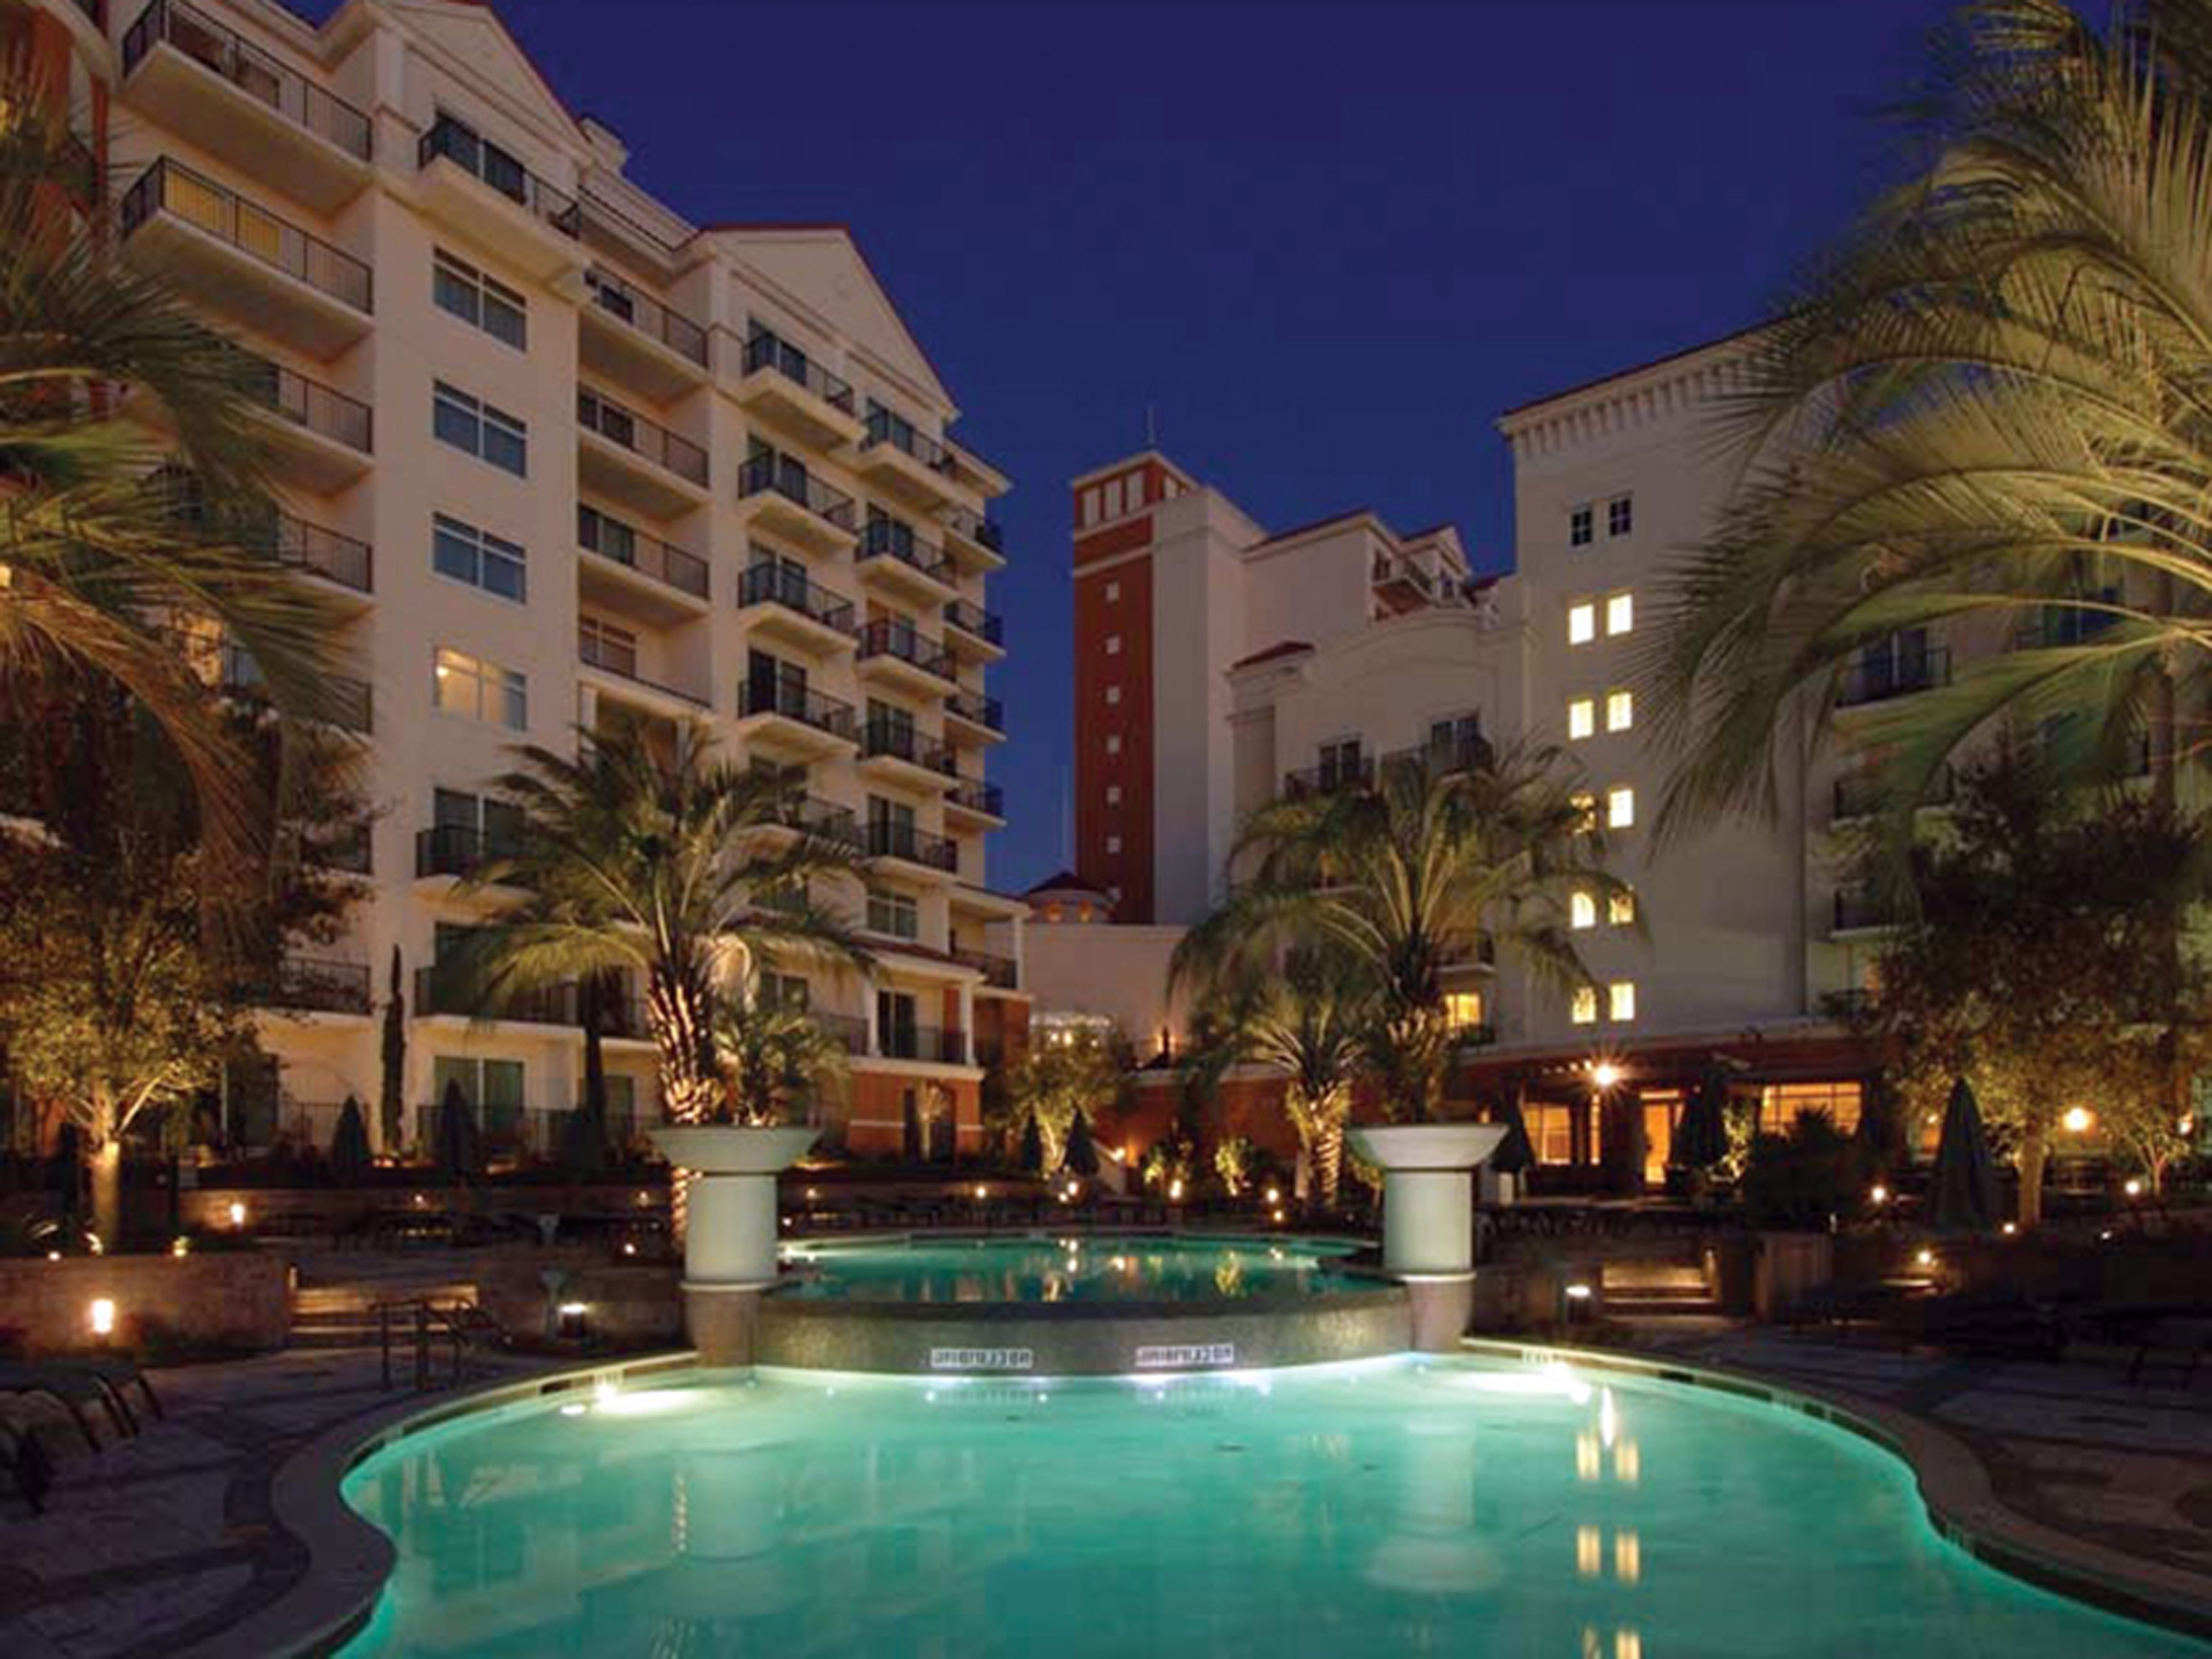 Amazing Outdoor Lighting Photos Of Landscapes And Architectural Pool Area Lighting (View 27 of 28)